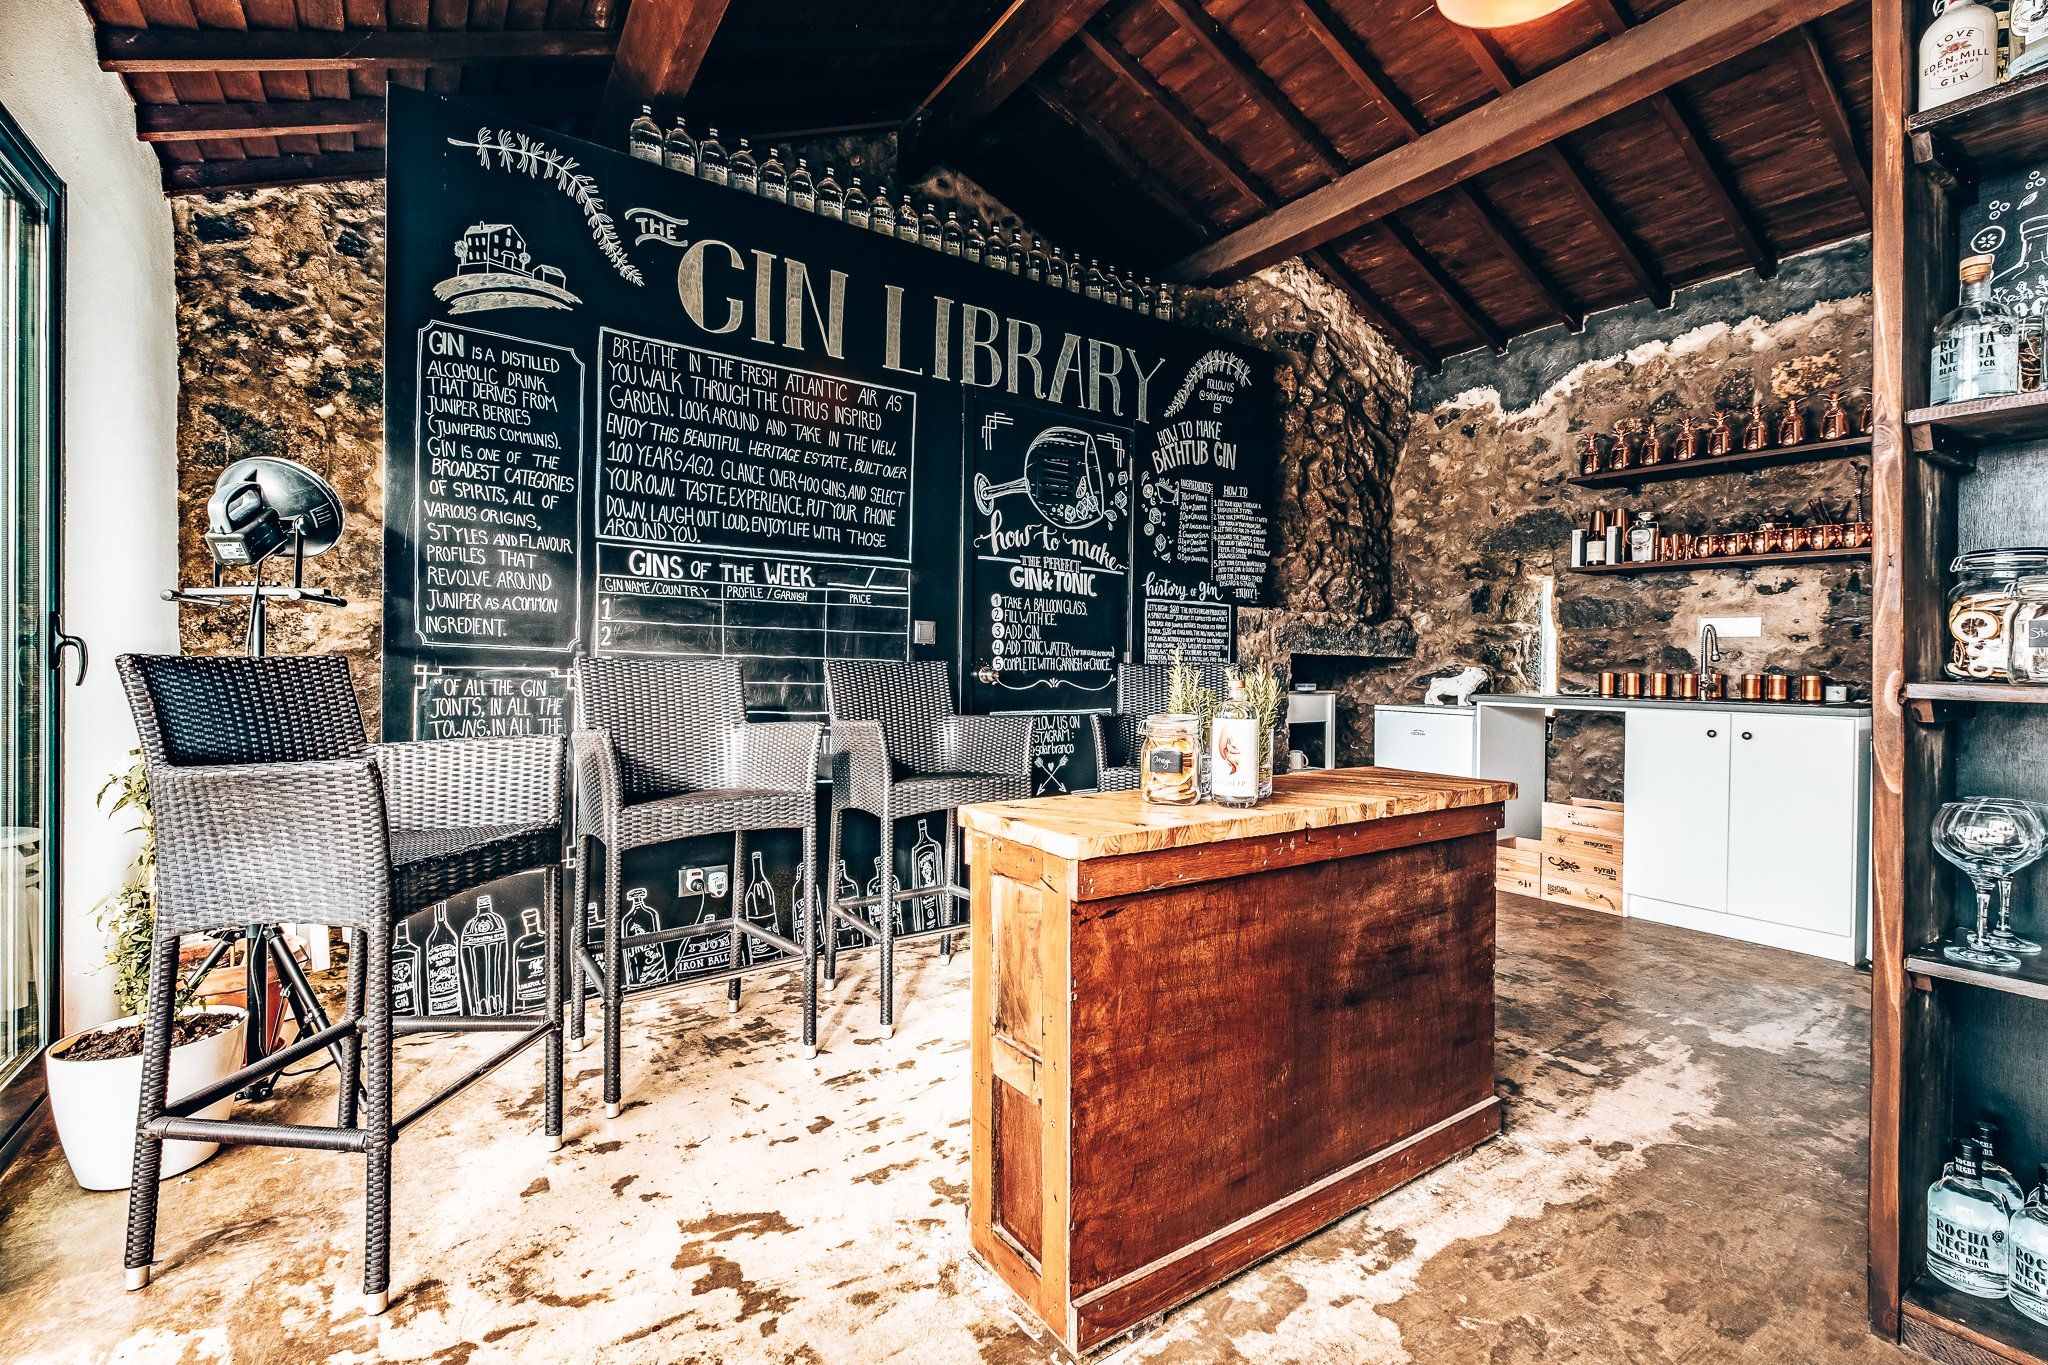 The Gin Library in de Azoren, Alles over gin.